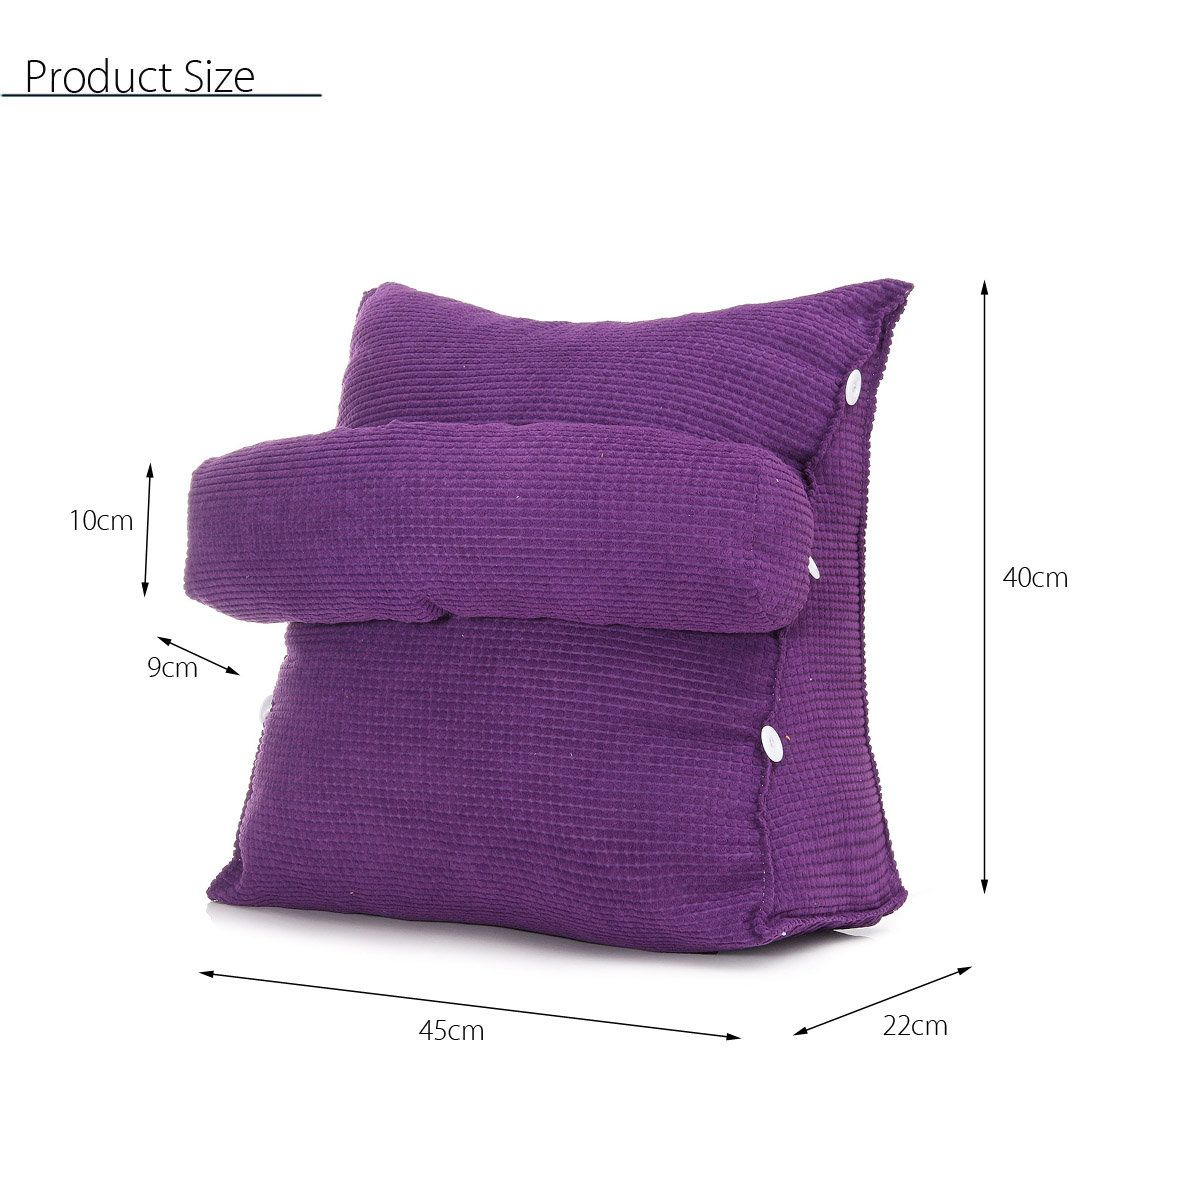 Adjustable Sofa Bed Chair Office Rest Neck Support Back Wedge Cushion Pillow Coussin Tutoriel